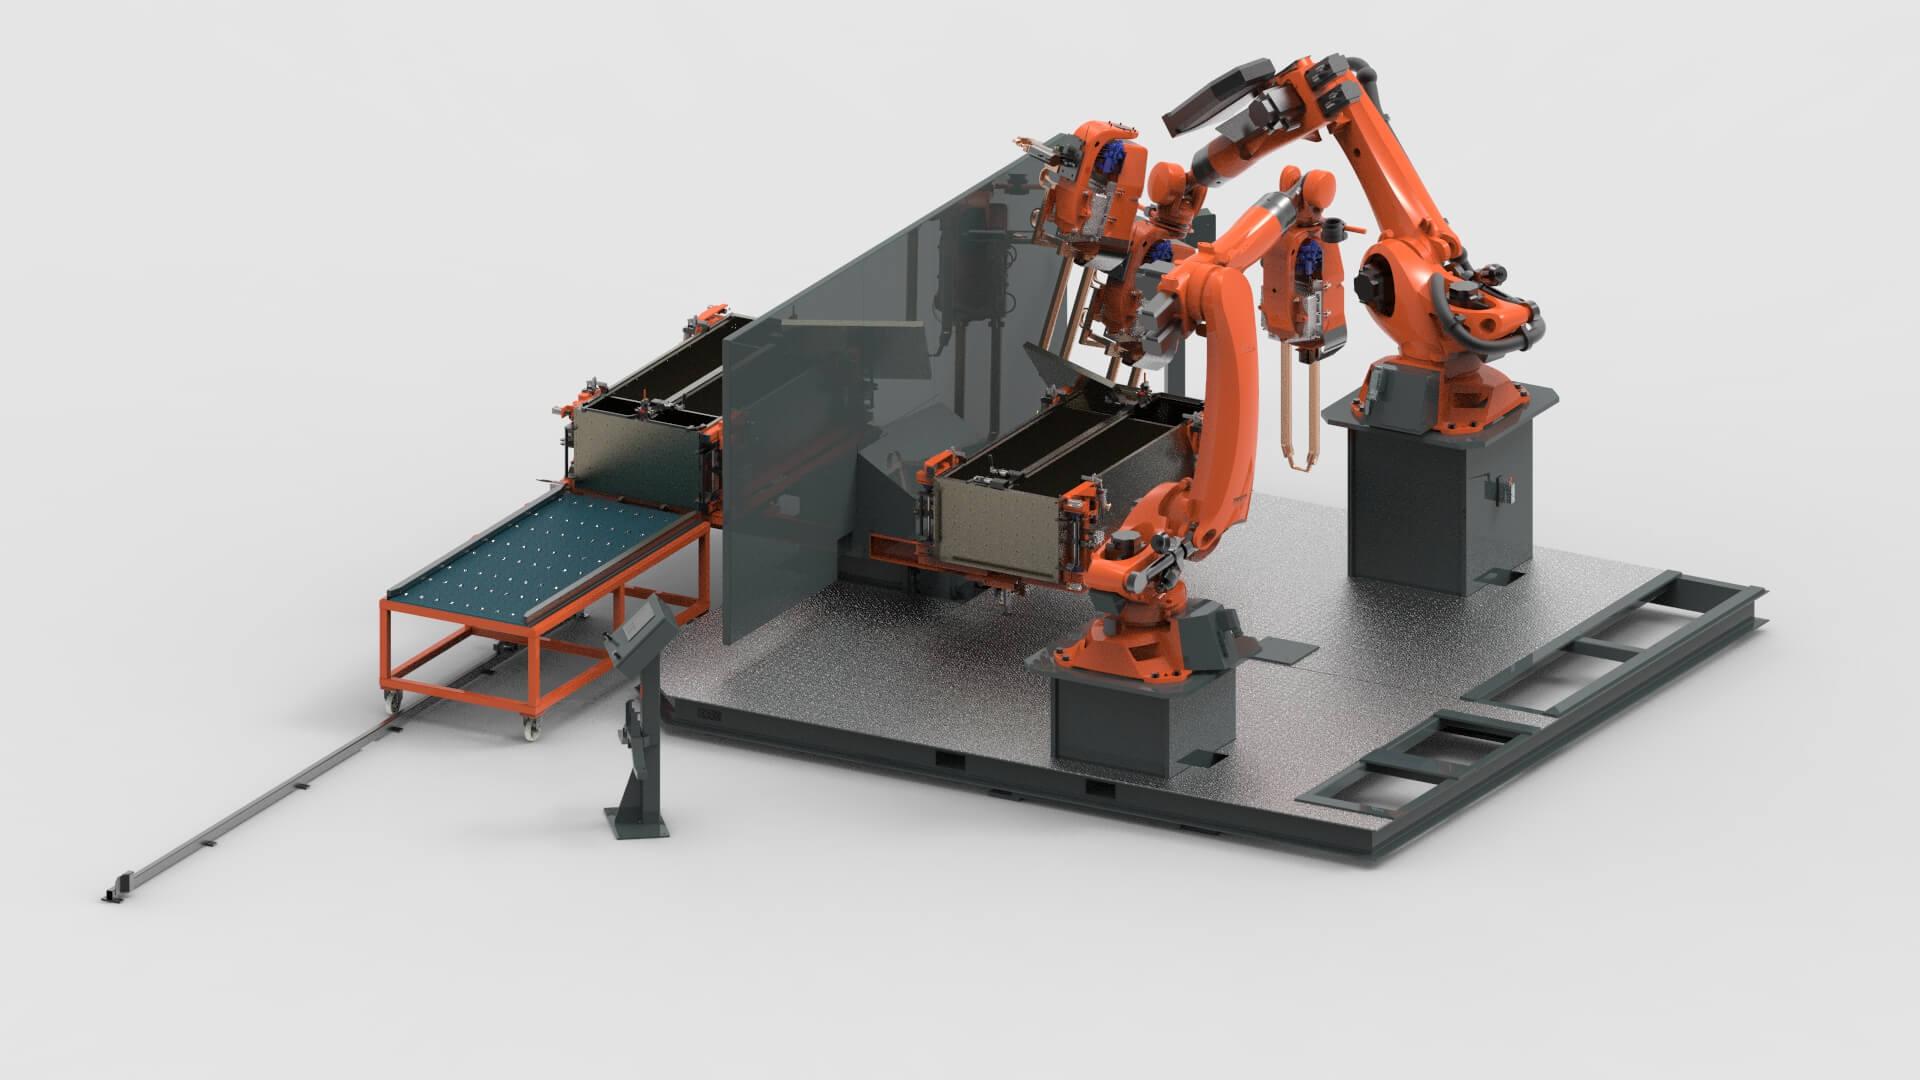 cabinet-systems-sheet-metal-robotic-welding-station.jpg